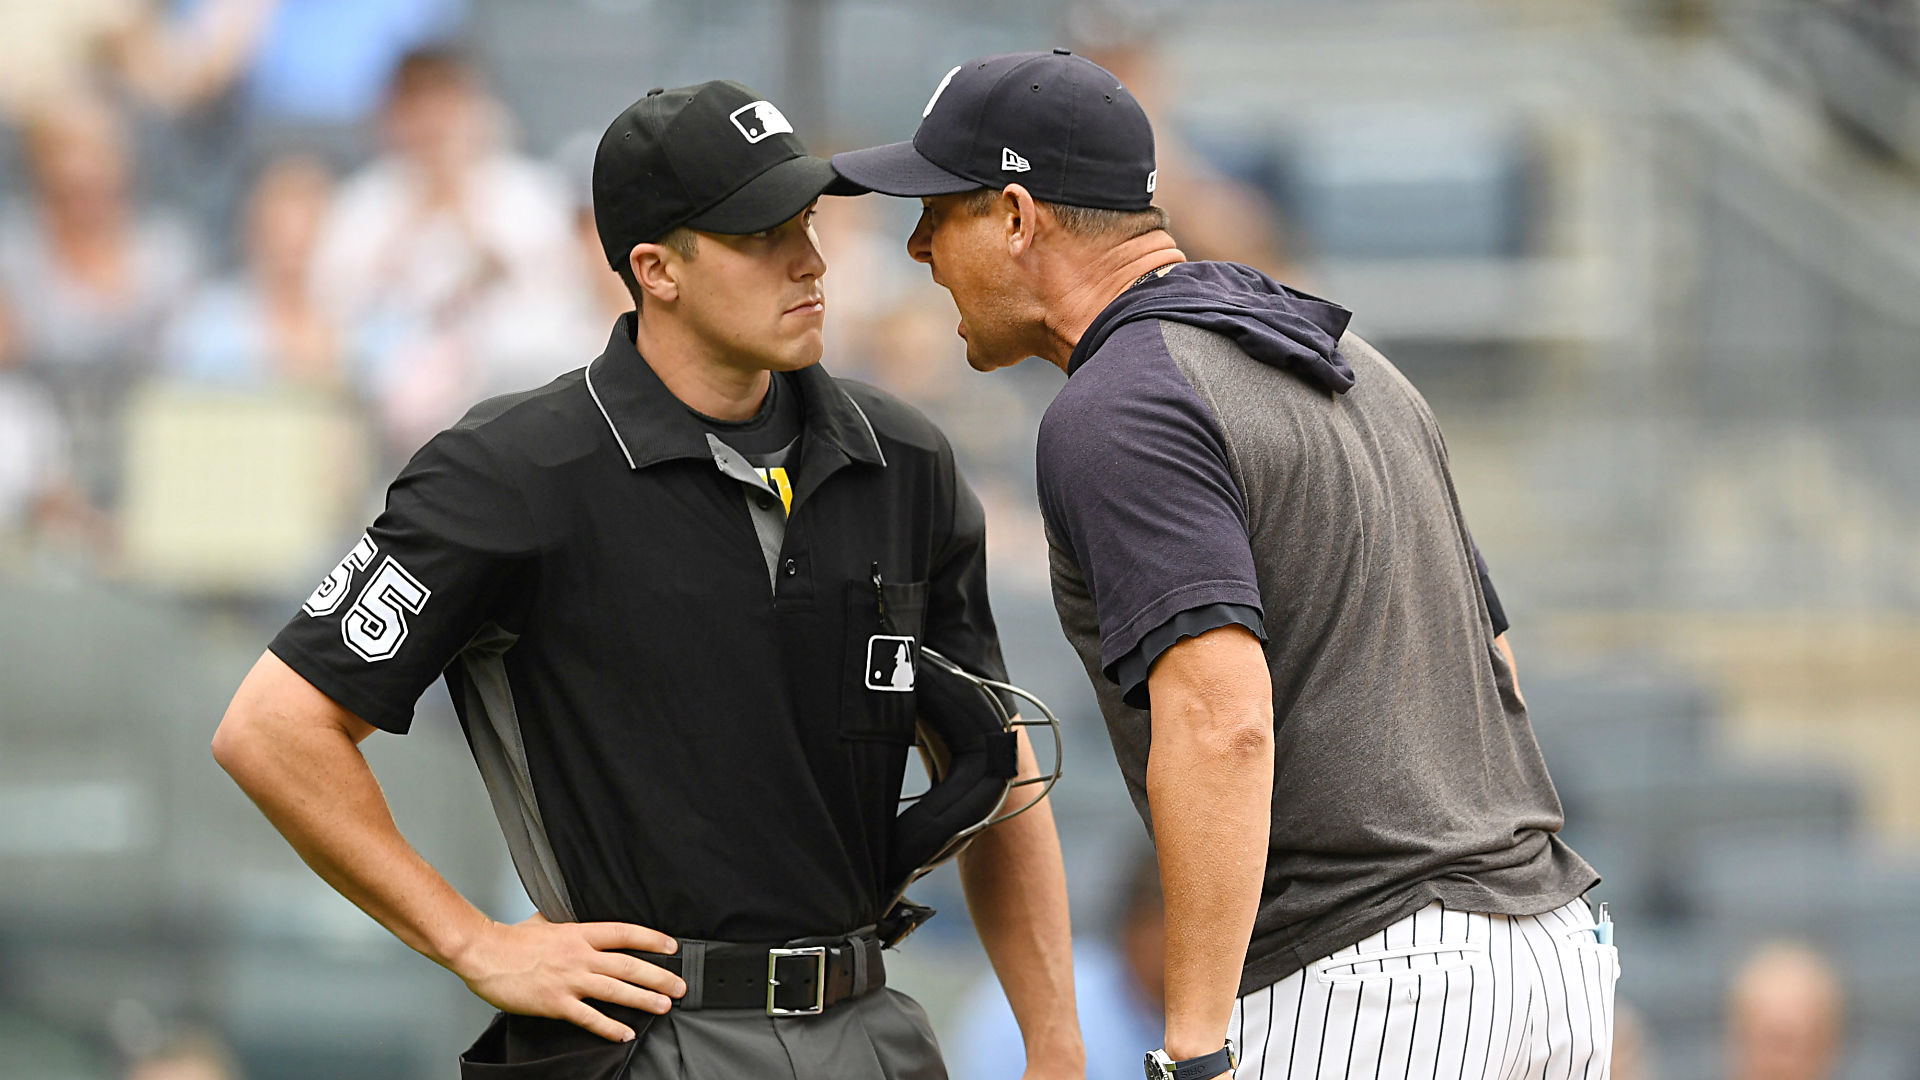 Yankees manager Aaron Boone tells umpire to 'F—ing get better' after being ejected